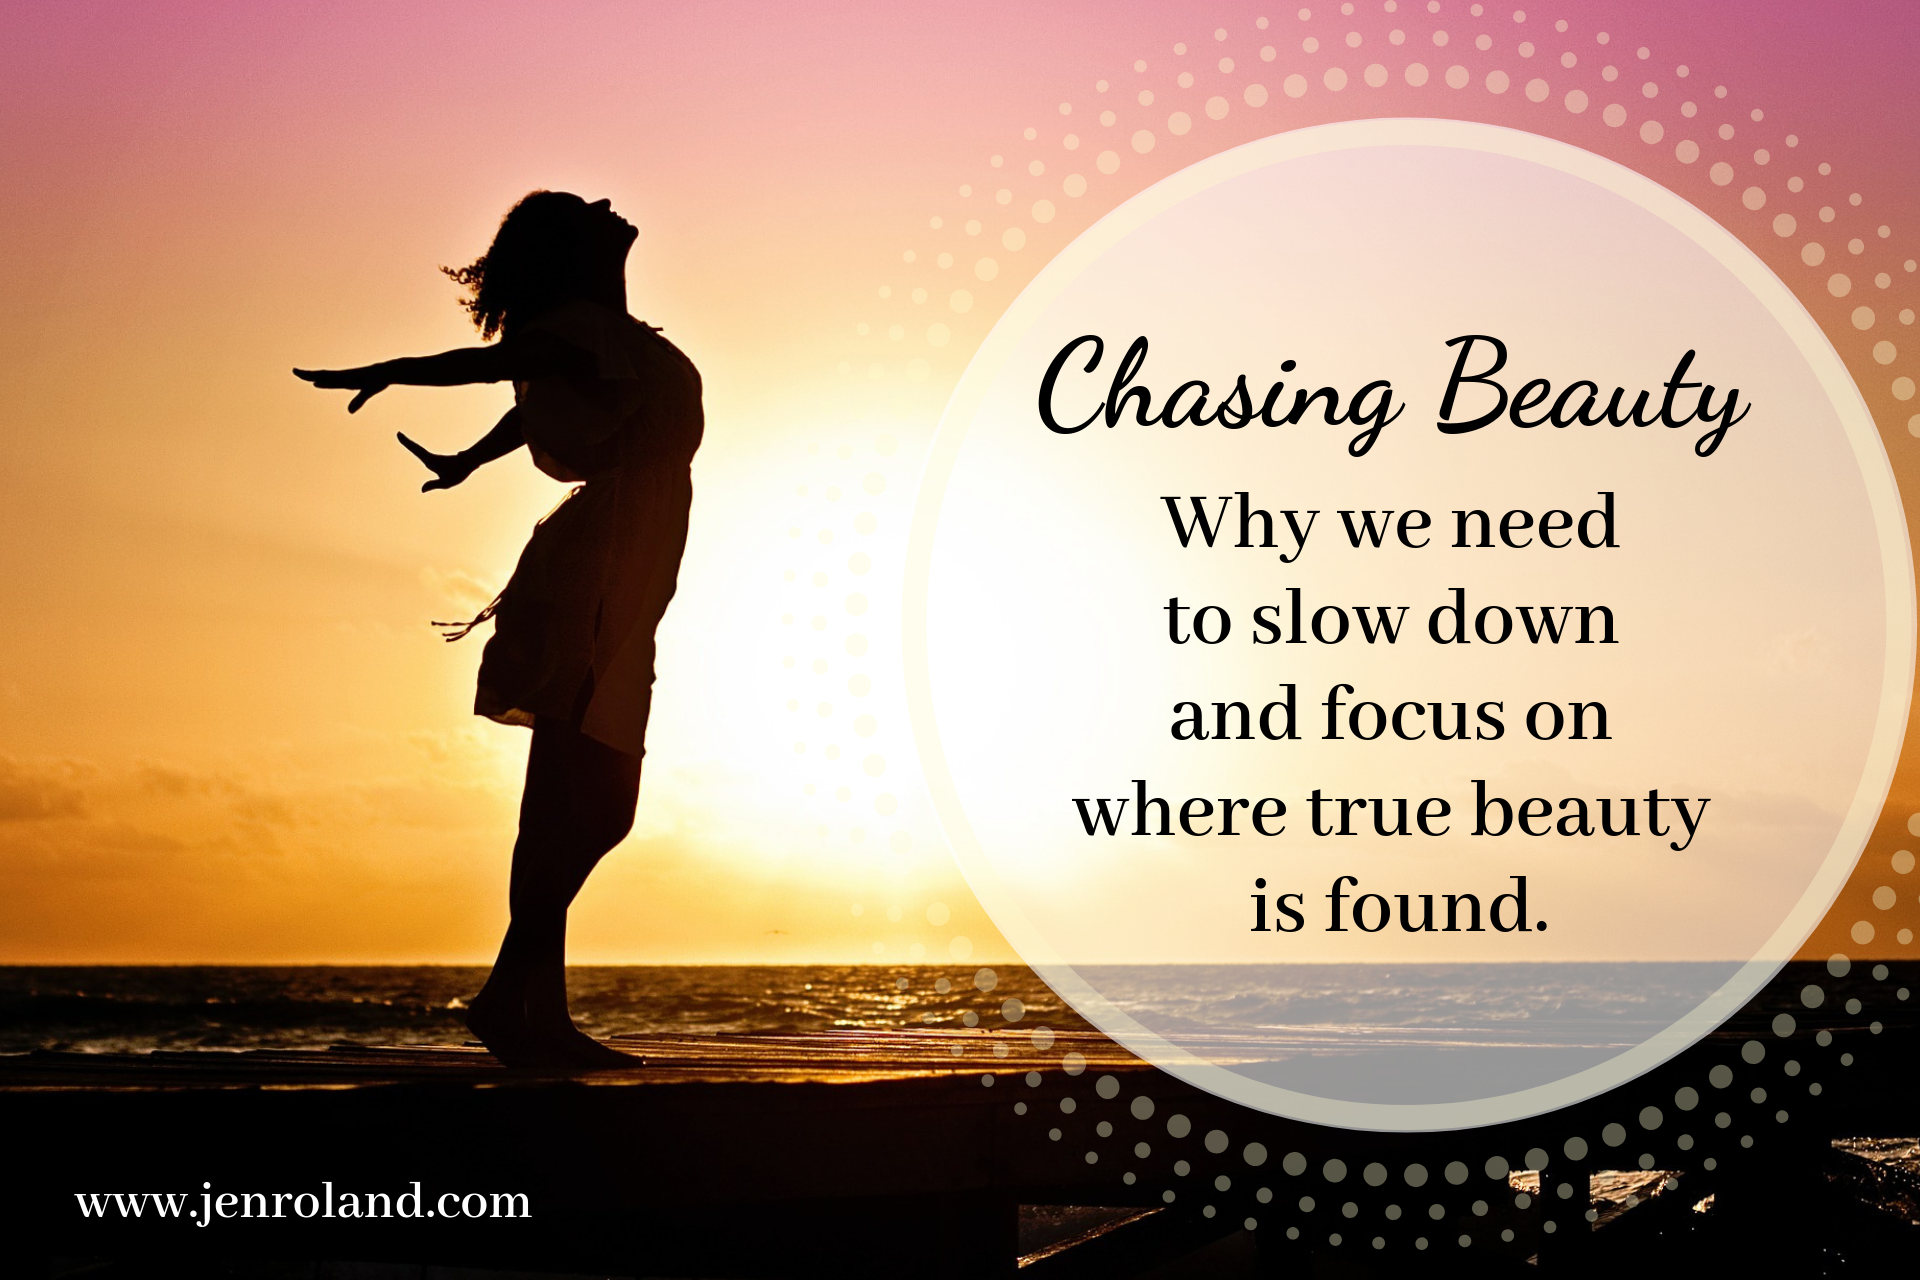 Chasing Beauty - Why We Need to Slow Down & Focus On Where